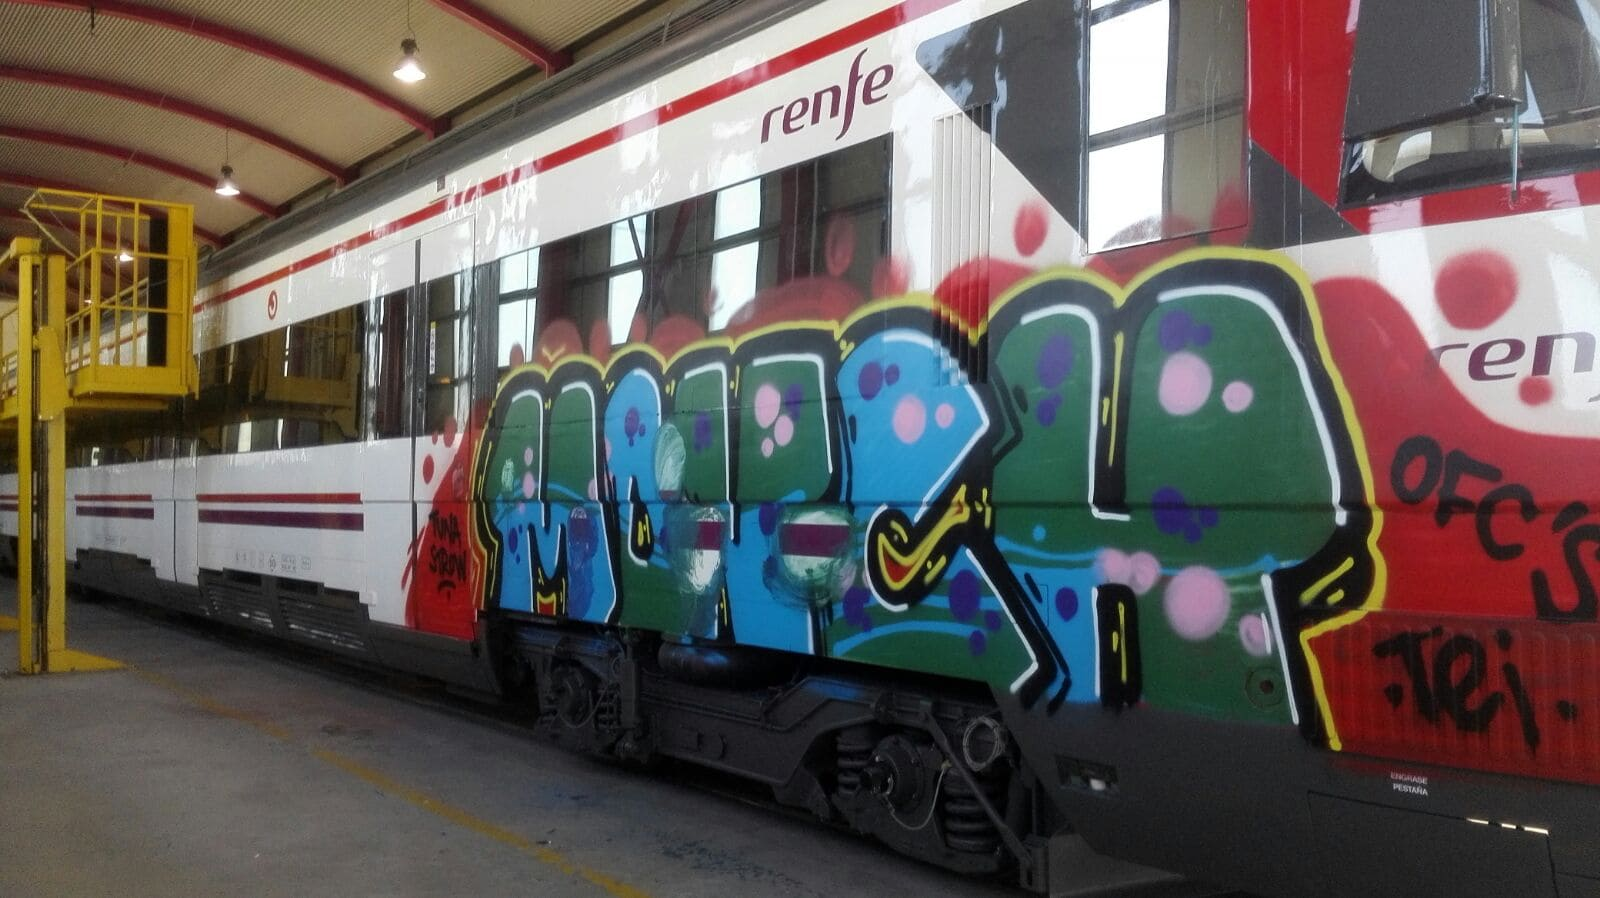 tren renfe madrid con graffiti